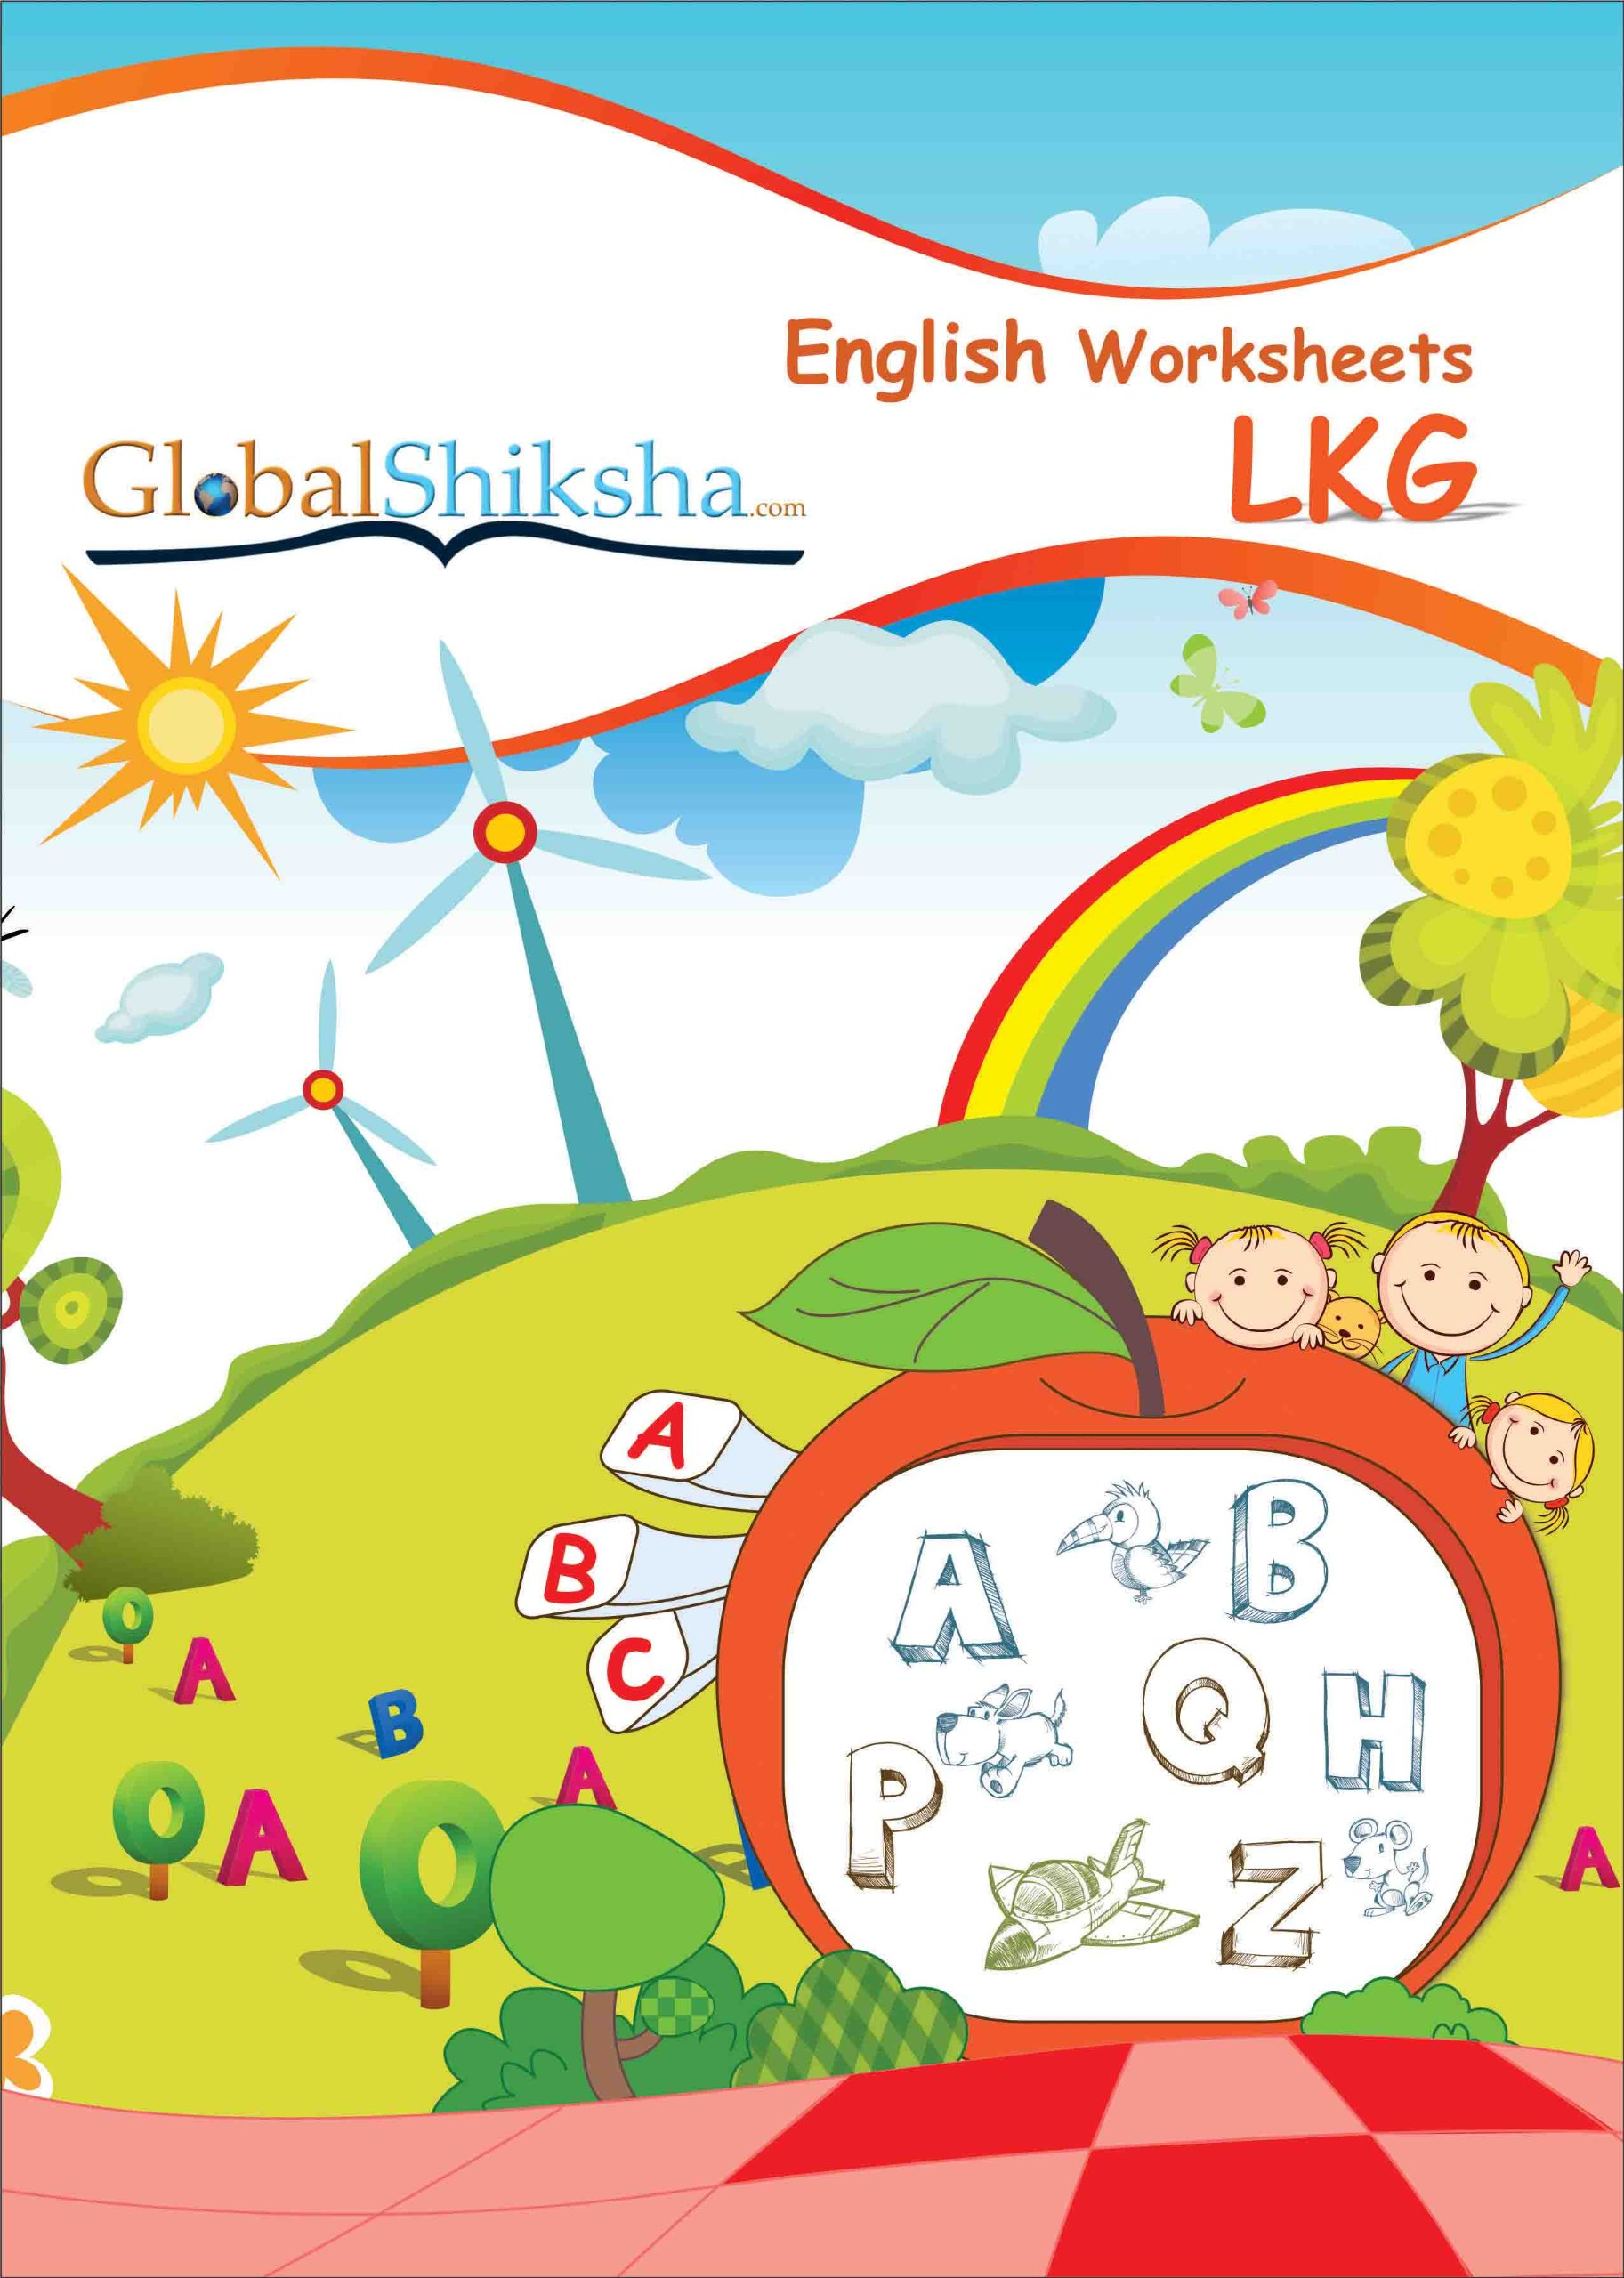 Worksheet For Kg2 English